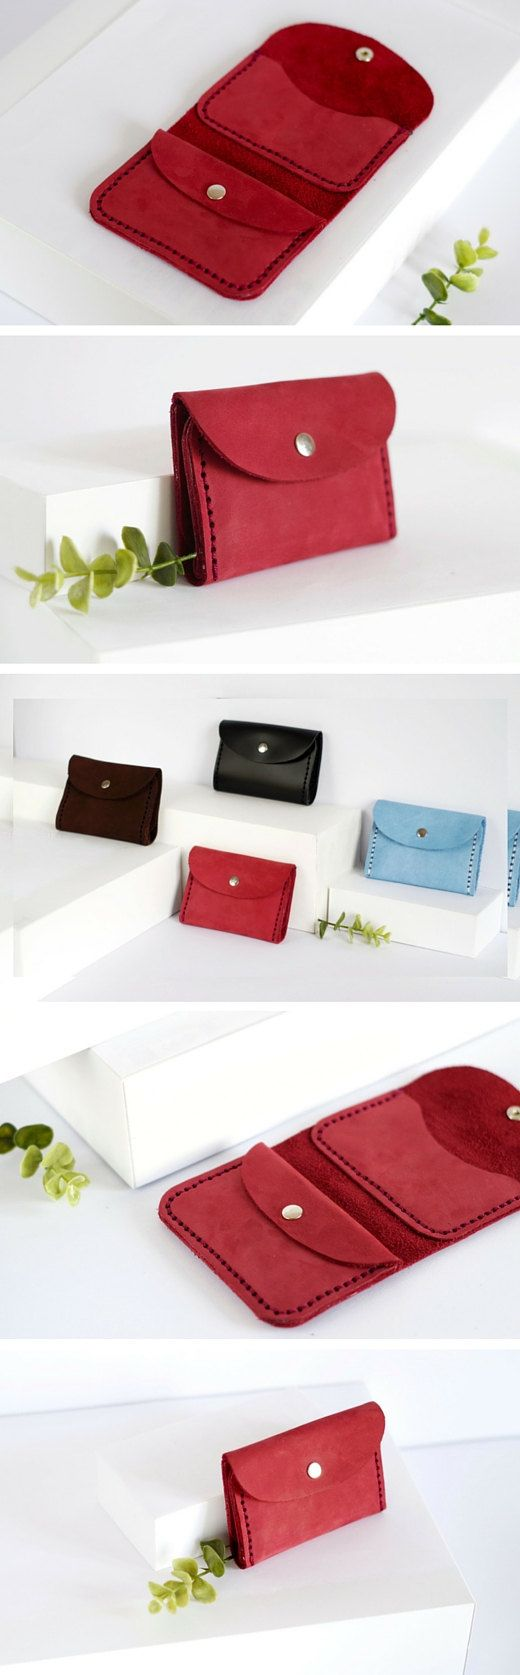 Small leather wallet Mini wallet Credit cards wallet Coins purse Coins pocket Minimalist wallet Money clip wallet Women's leather wallet